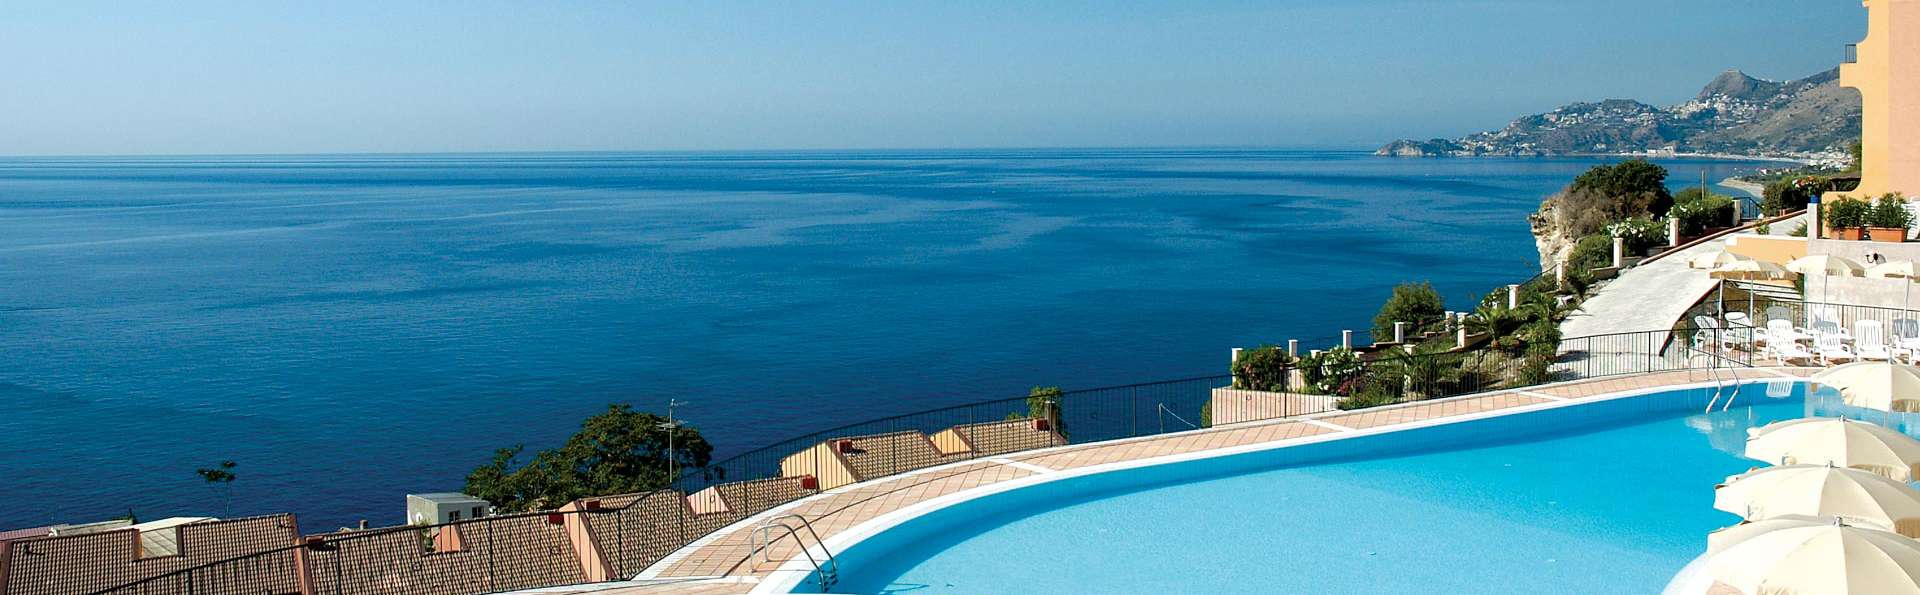 Capo dei Greci Taormina Coast - Resort Hotel & SPA - EDIT_POOL_01.jpg